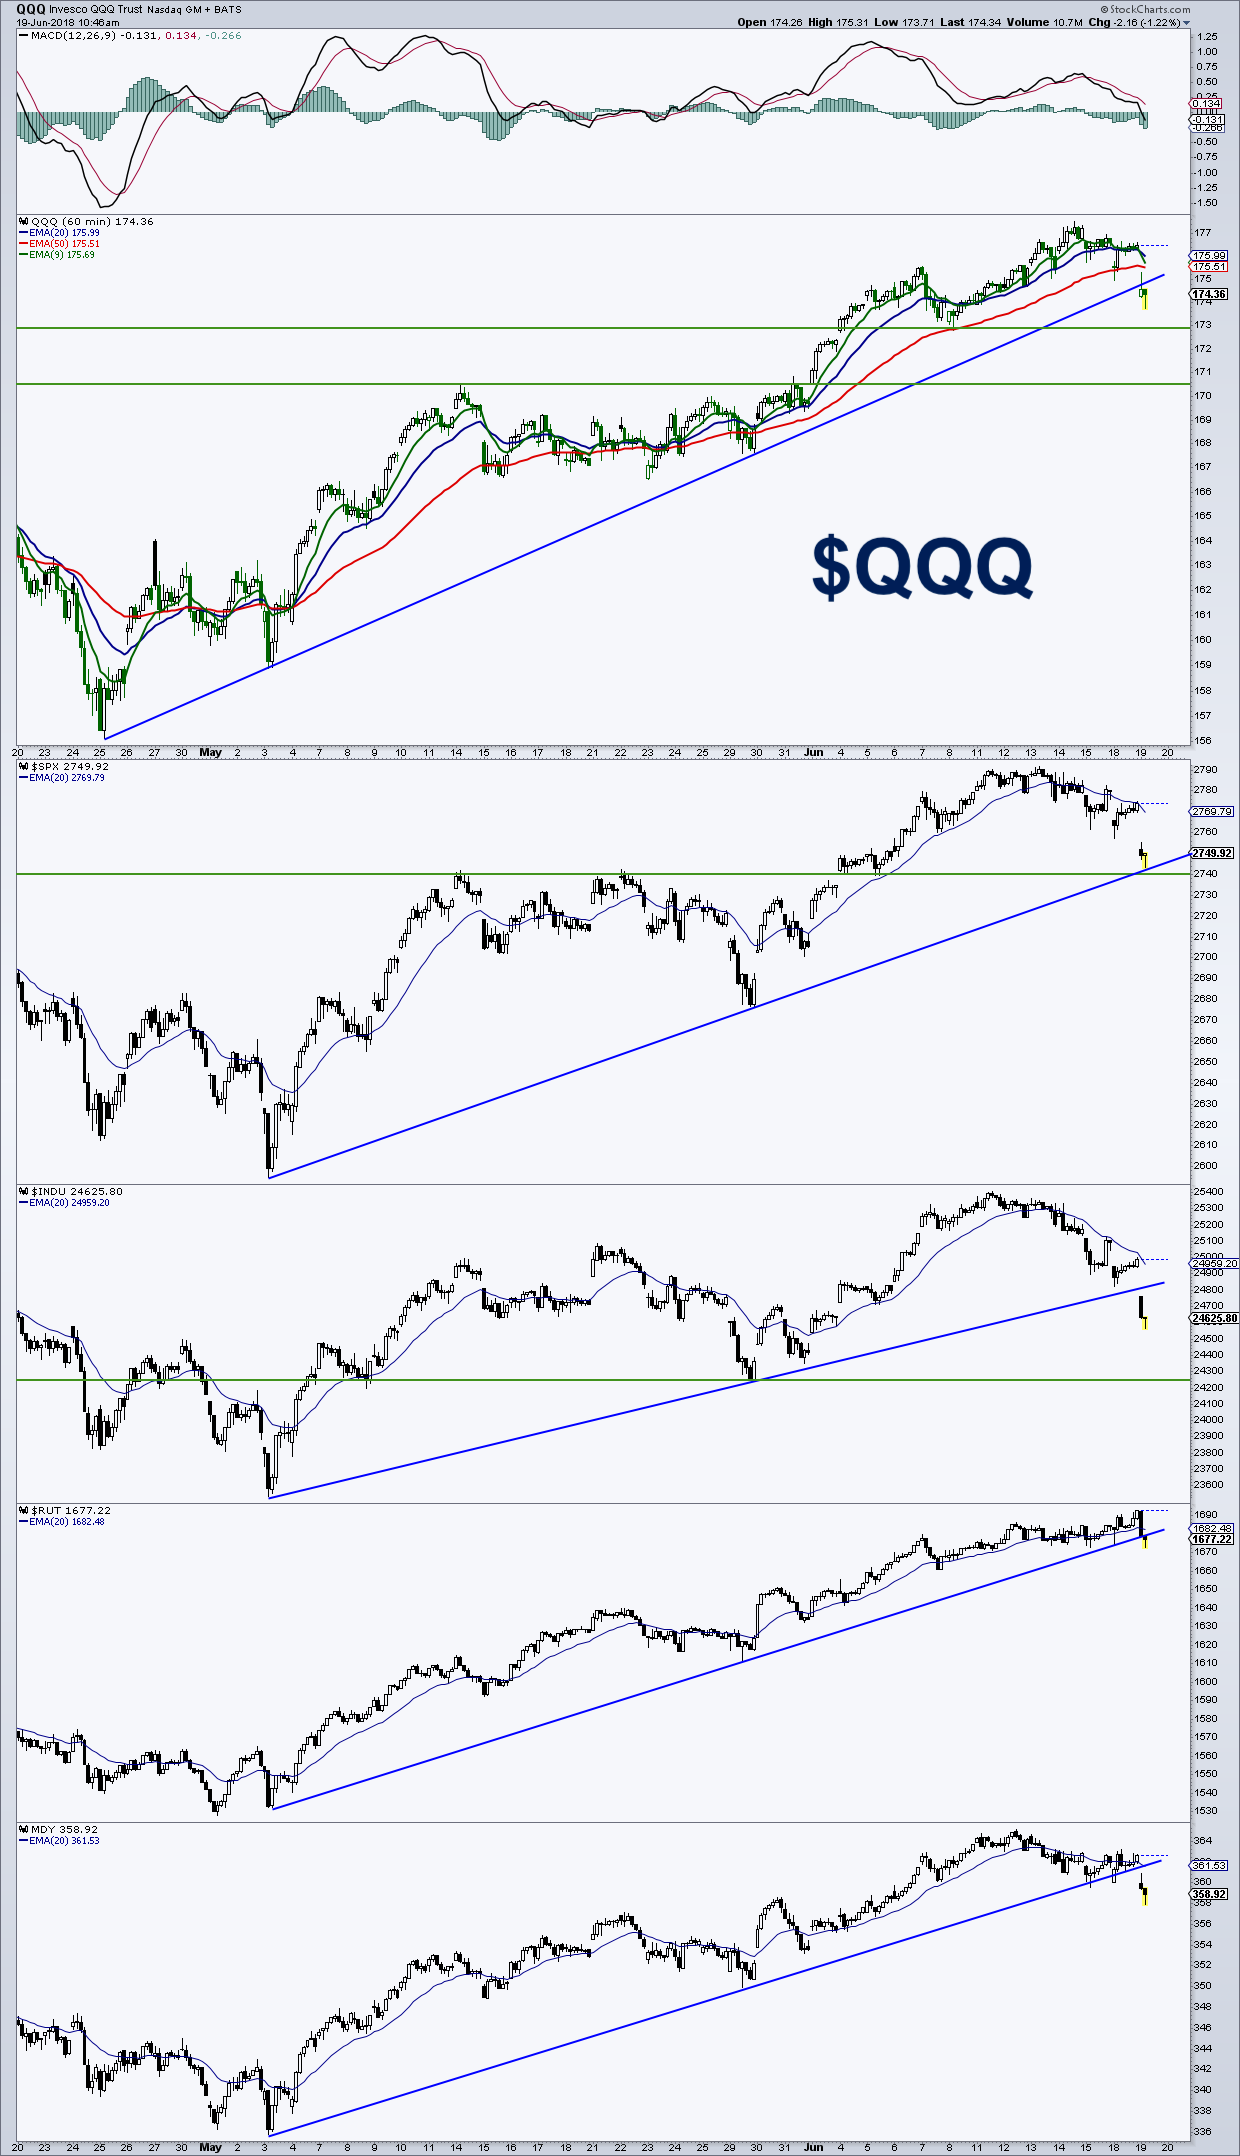 qqq nasdaq etf investing chart analysis_june 19